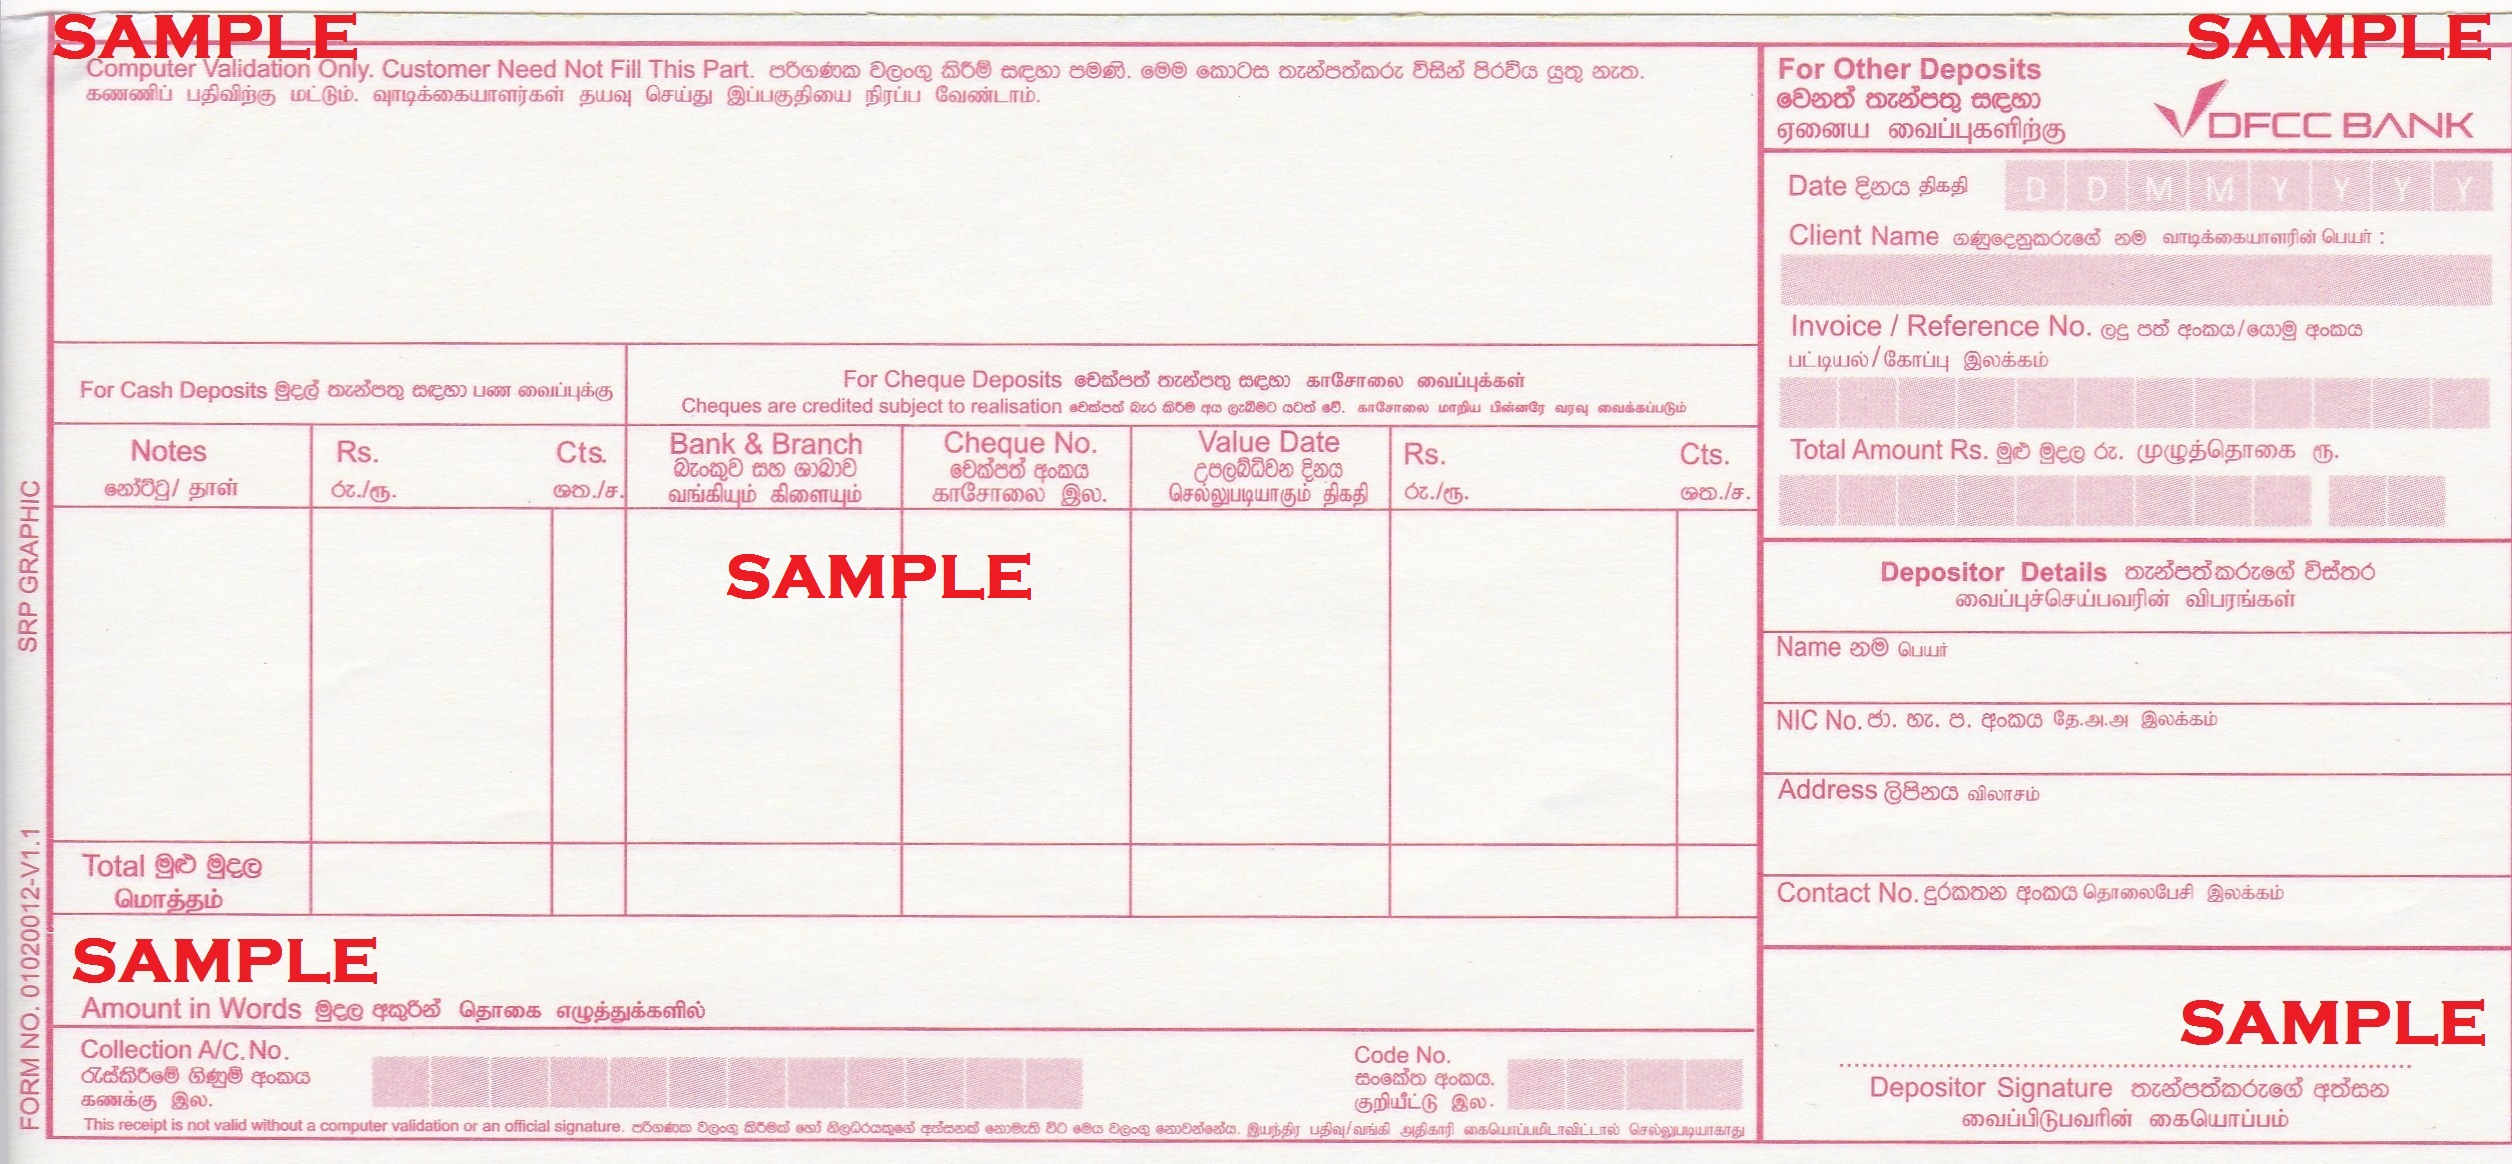 Beautiful bank withdrawal slip template contemporary for Withdrawal slip template